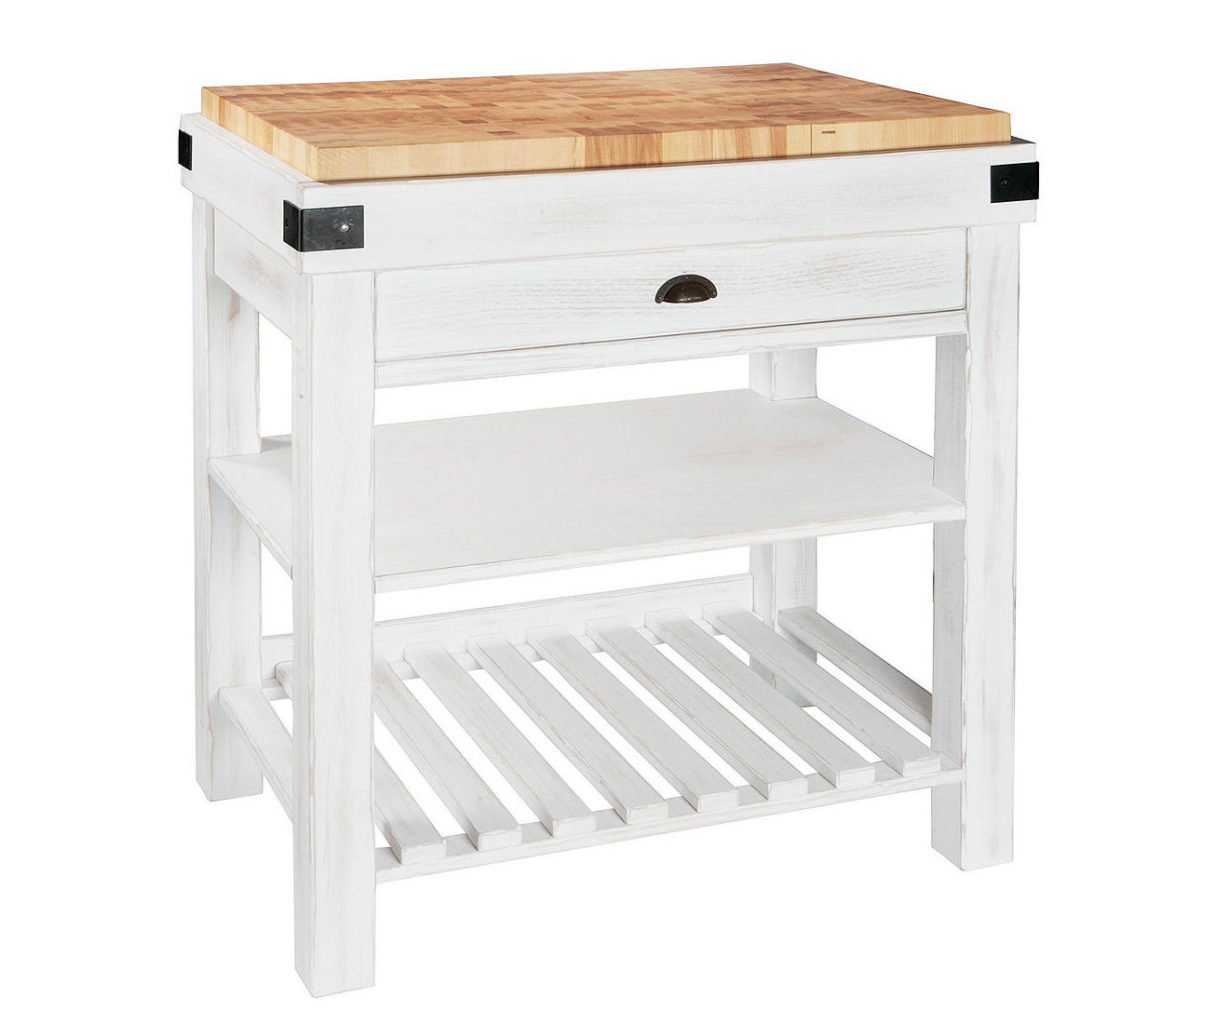 Eddingtons Foxhill freestanding kitchen island for small spaces in white with wood chopping block